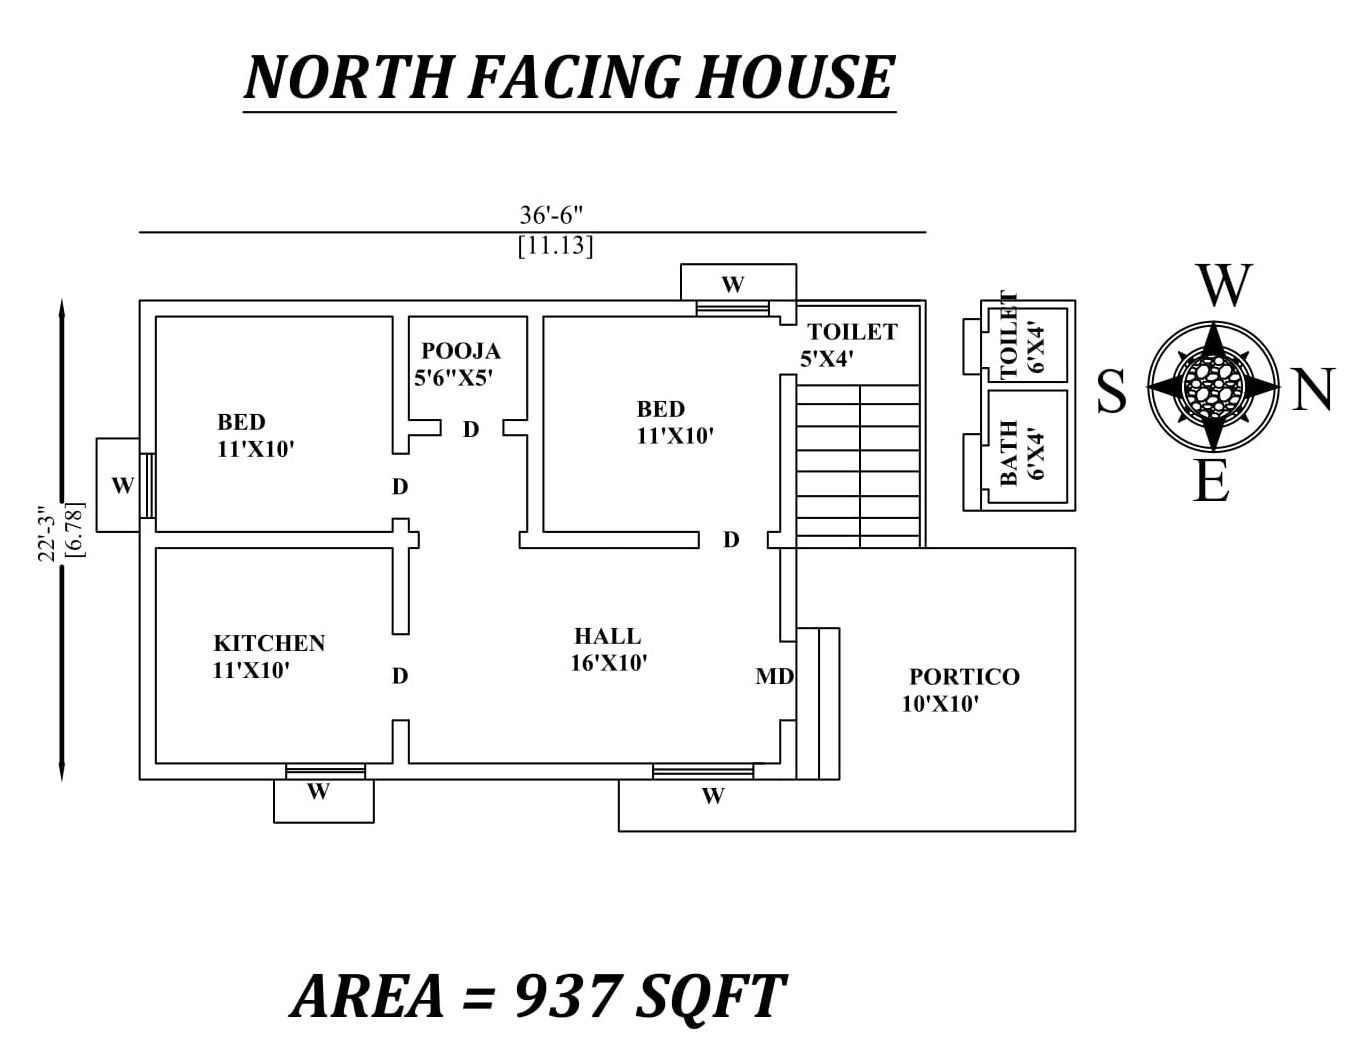 36 6 X22 3 Amazing North Facing 2bhk House Plan As Per Vastu Shastra Autocad Dwg And Pdf File 2bhk House Plan North Facing House Little House Plans